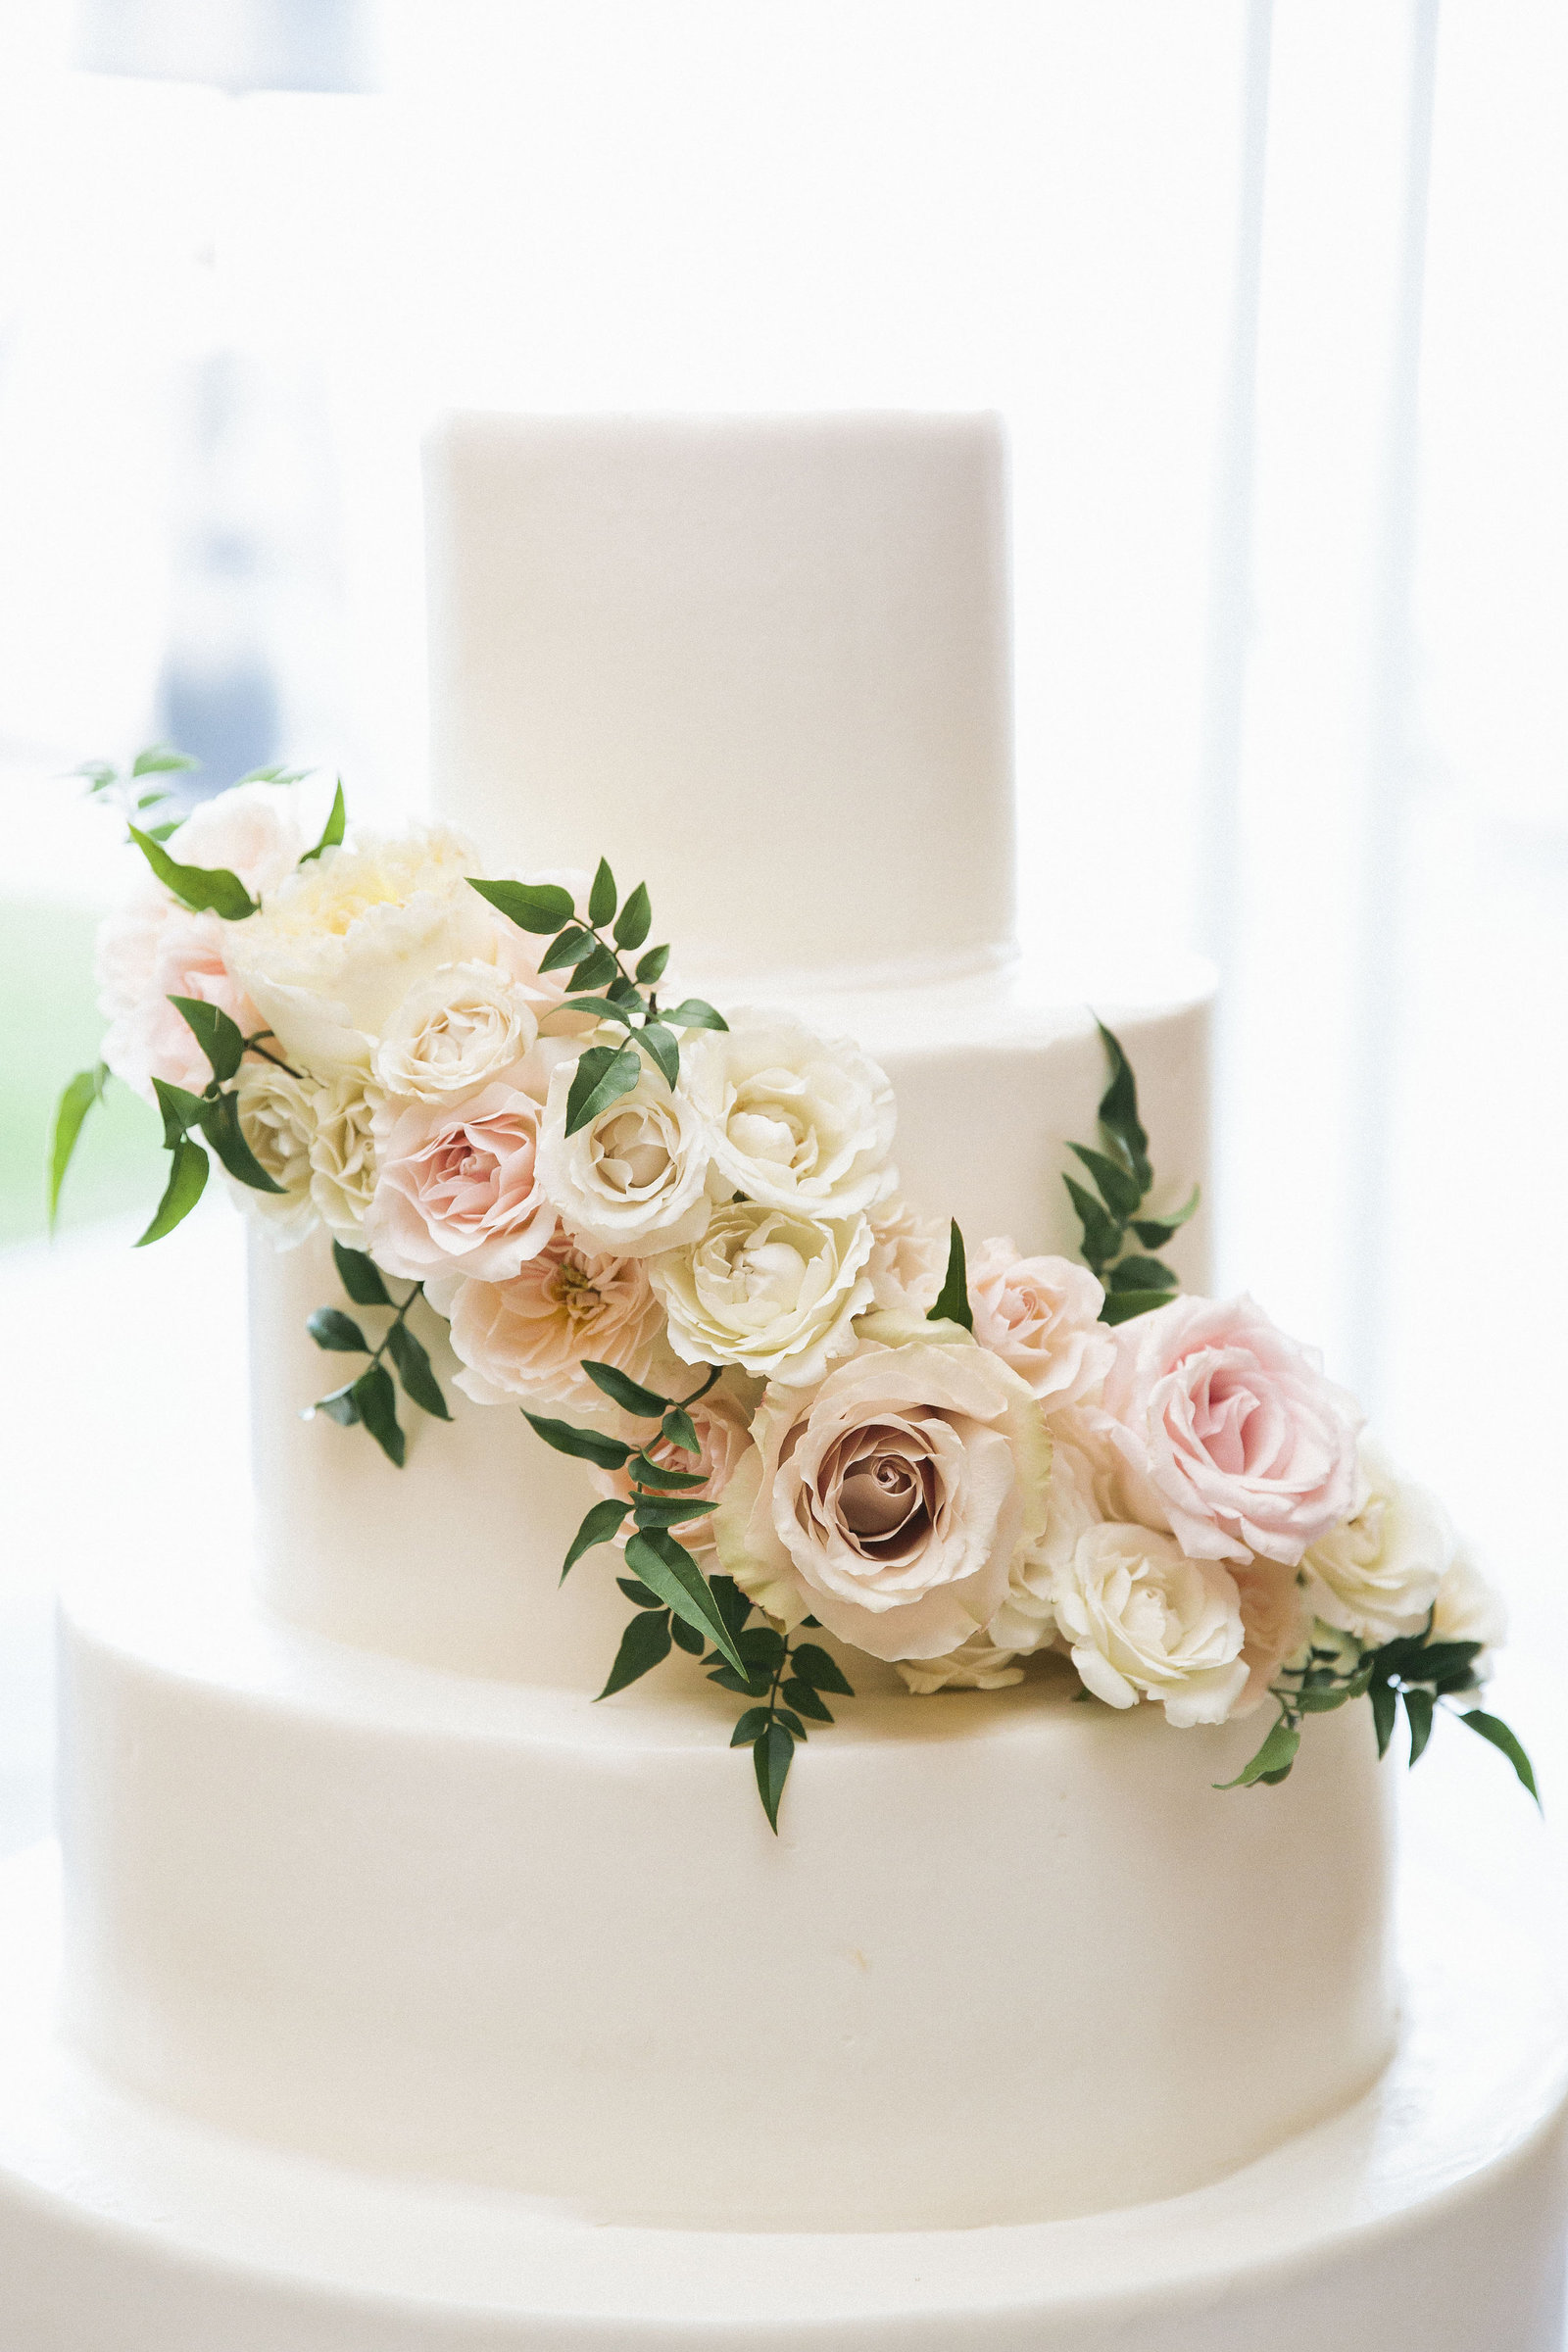 Wedding cake with florals on the tiers by Montilio's bakery